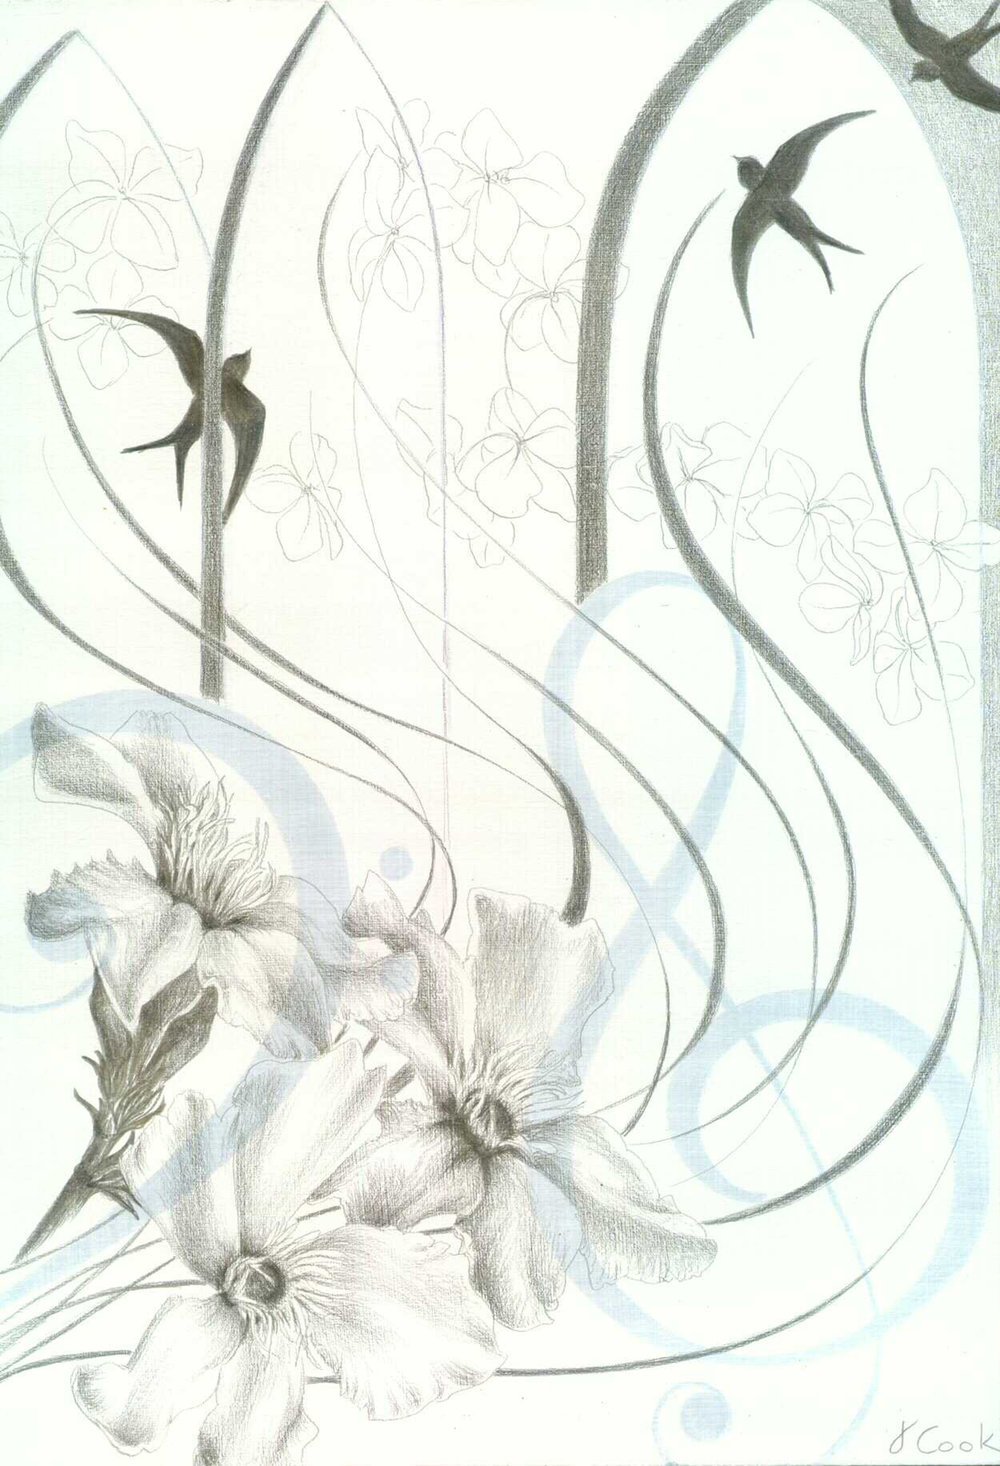 Spem in Allium , silverpoint and acrylic, Jeannine Cook artist. Private collection